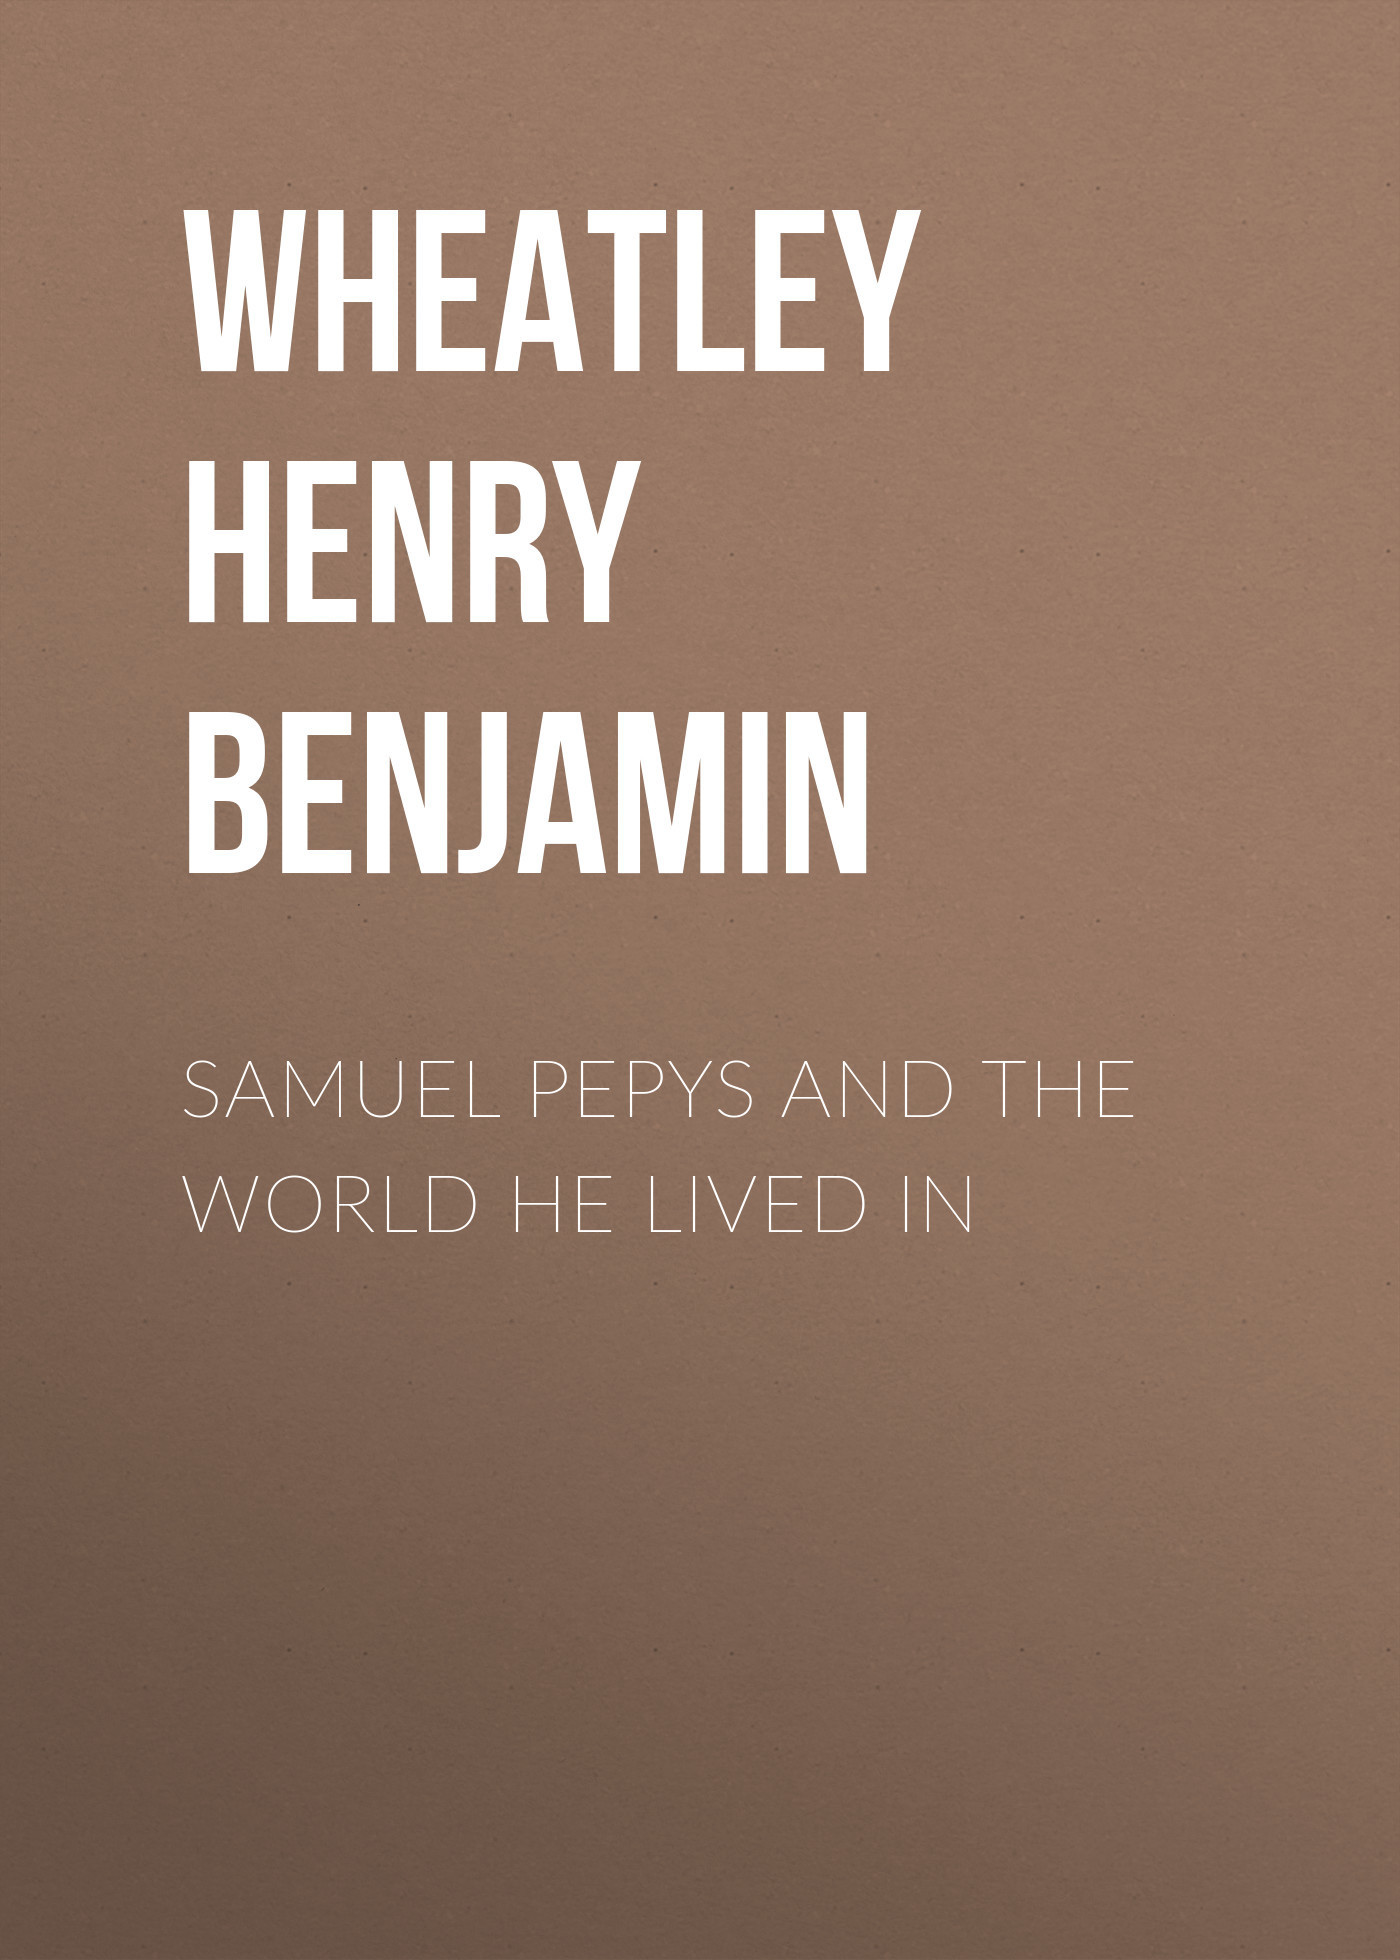 Wheatley Henry Benjamin Samuel Pepys and the World He Lived In constant delight 5 magic oils спрей для придания объема 5 масел 200 мл